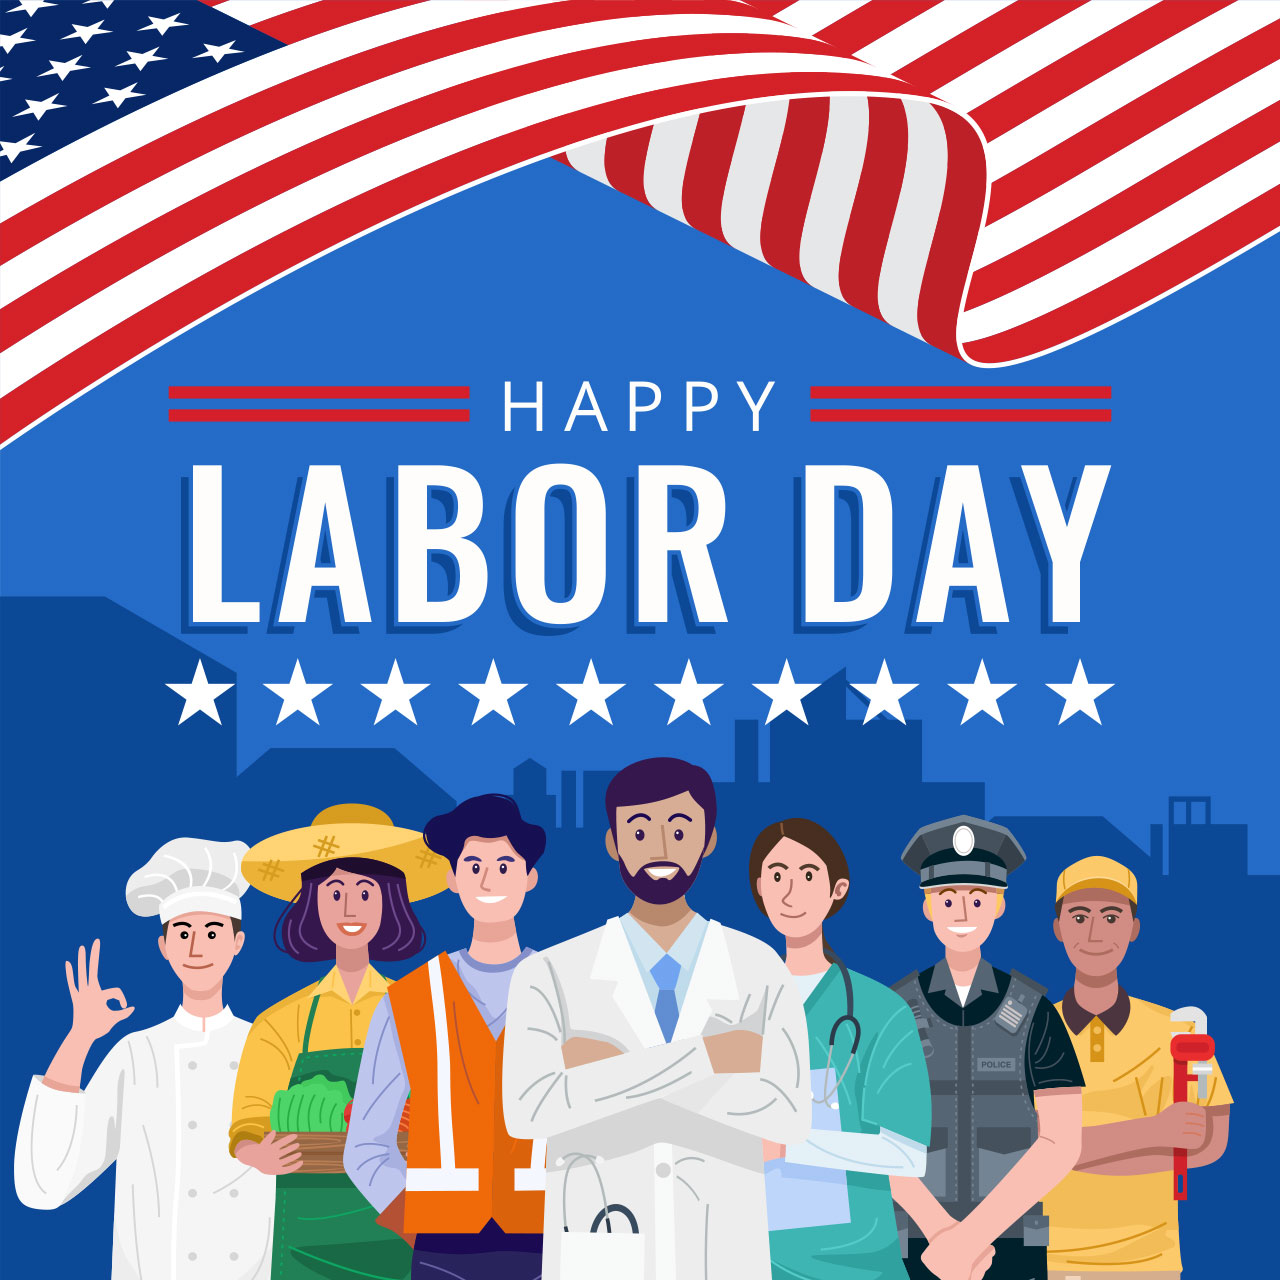 Labor Day: various occupations standing in front of the flag